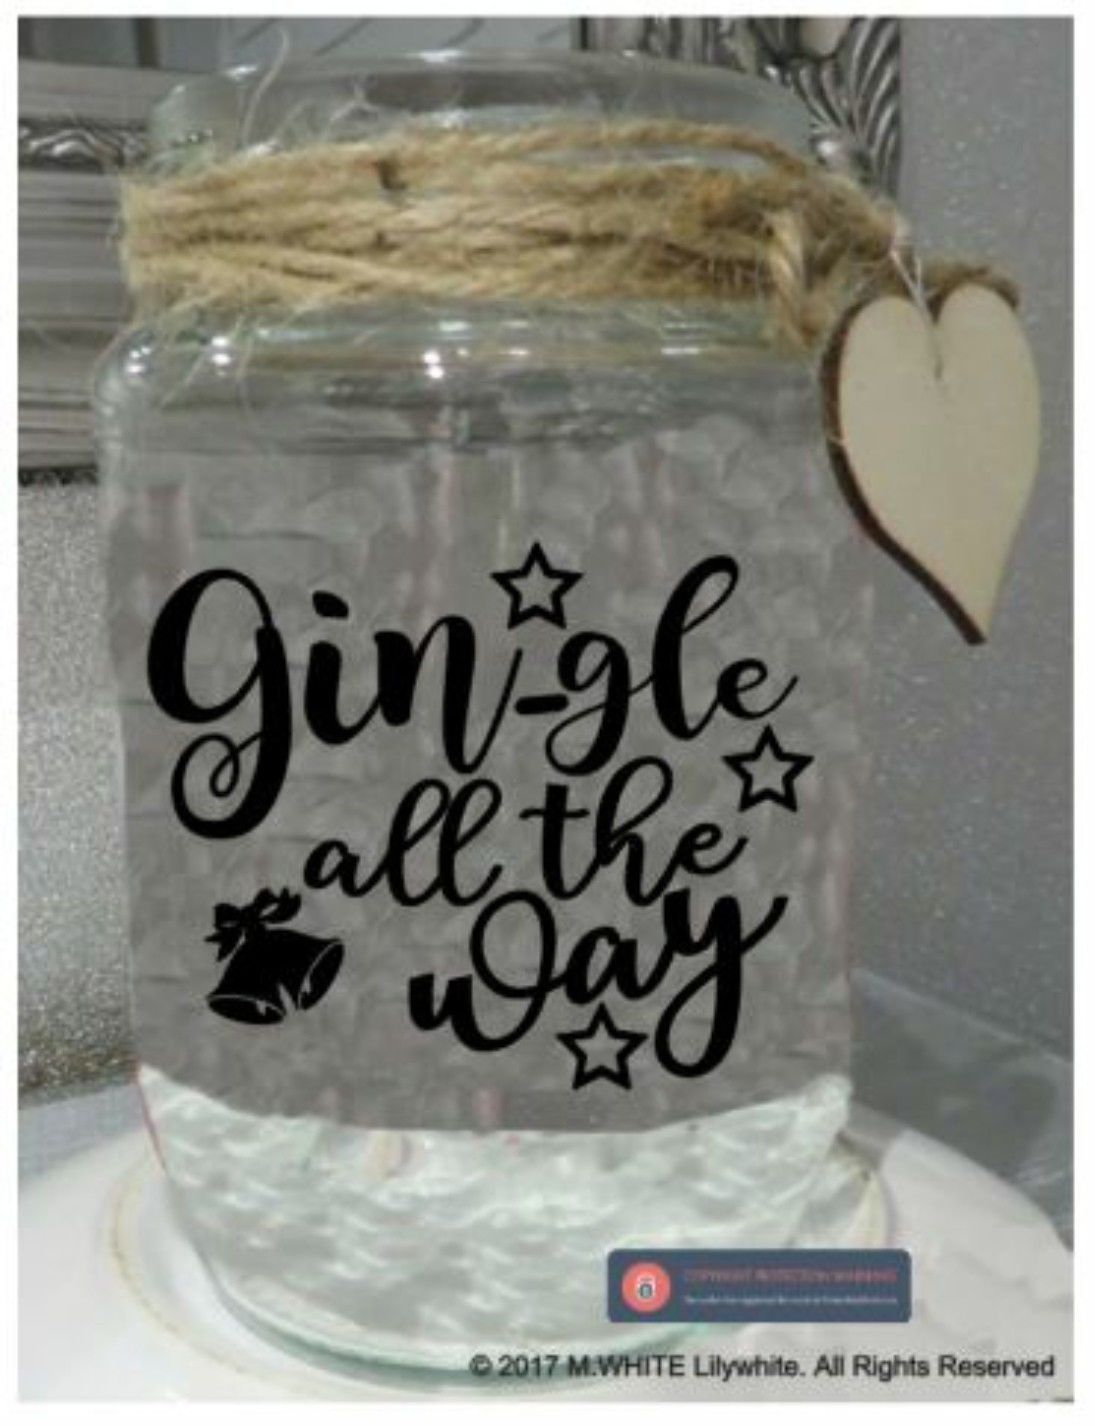 Jar Stickers Gl Label Gin Gle All The Way Novelty Christmas Gift